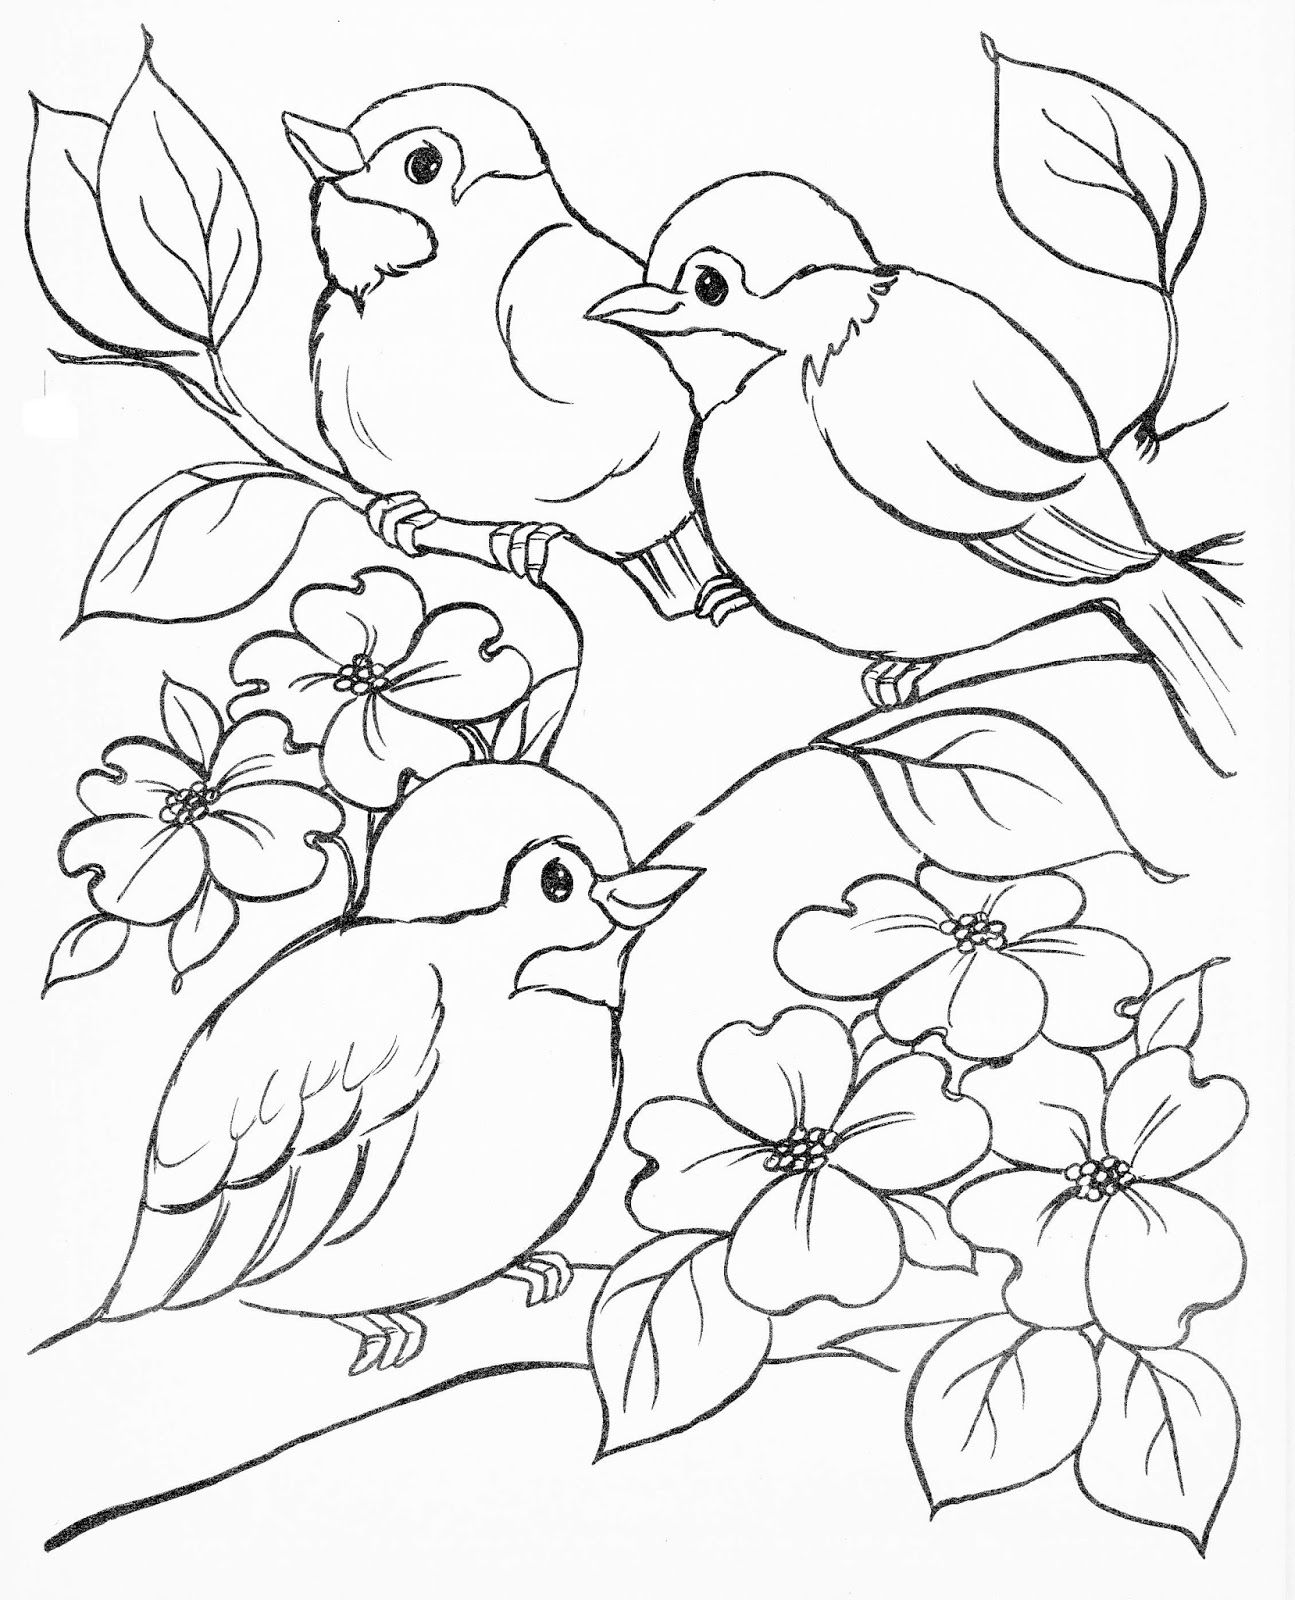 Bless This Day Bird Coloring Pages Bird Drawings Coloring Pages